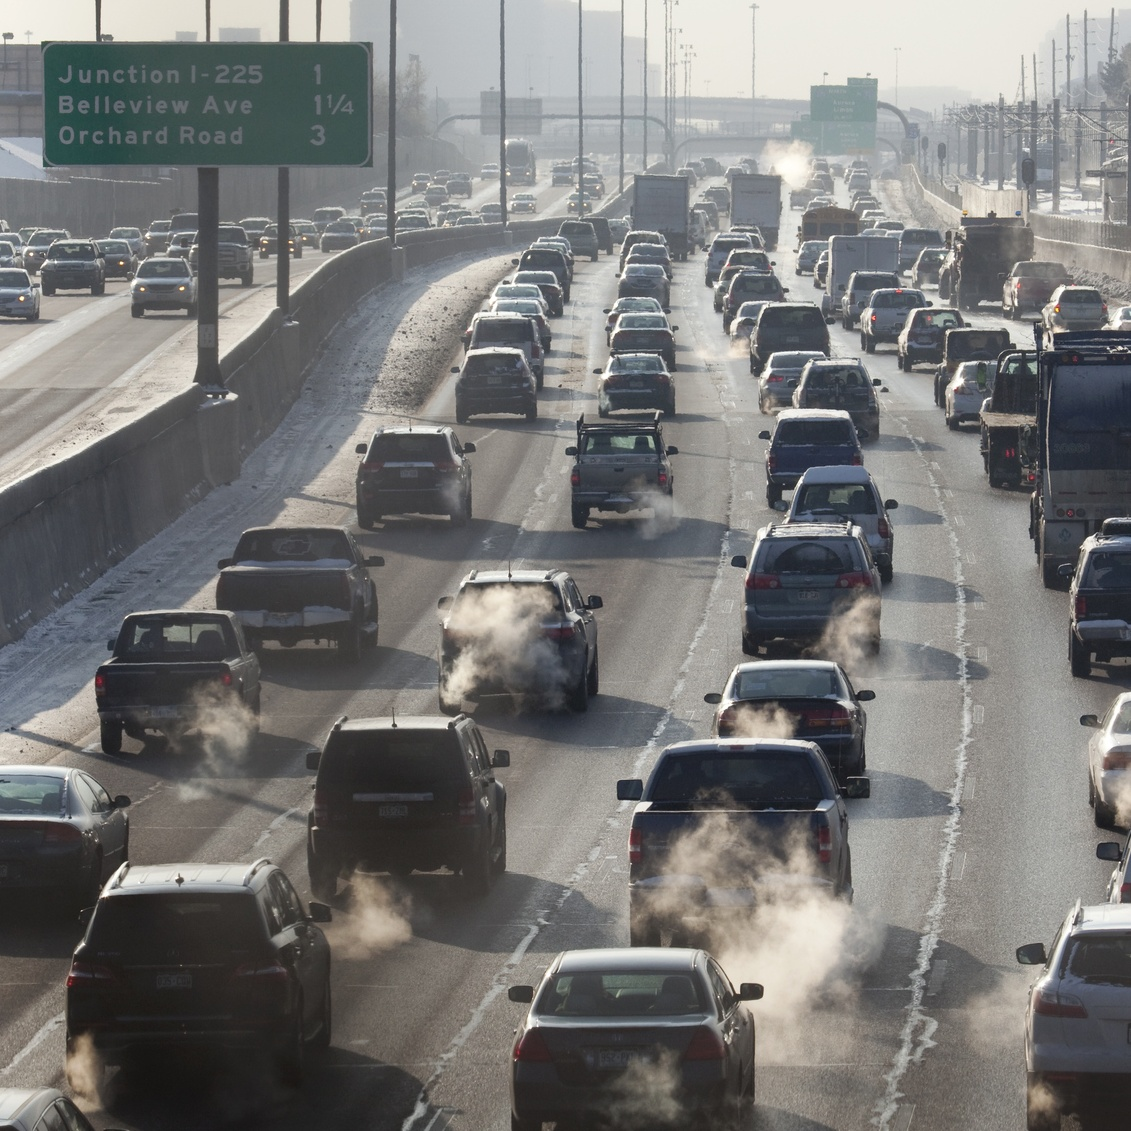 Weaker Clean Car Rules Threaten Southwest's Air, Public Health